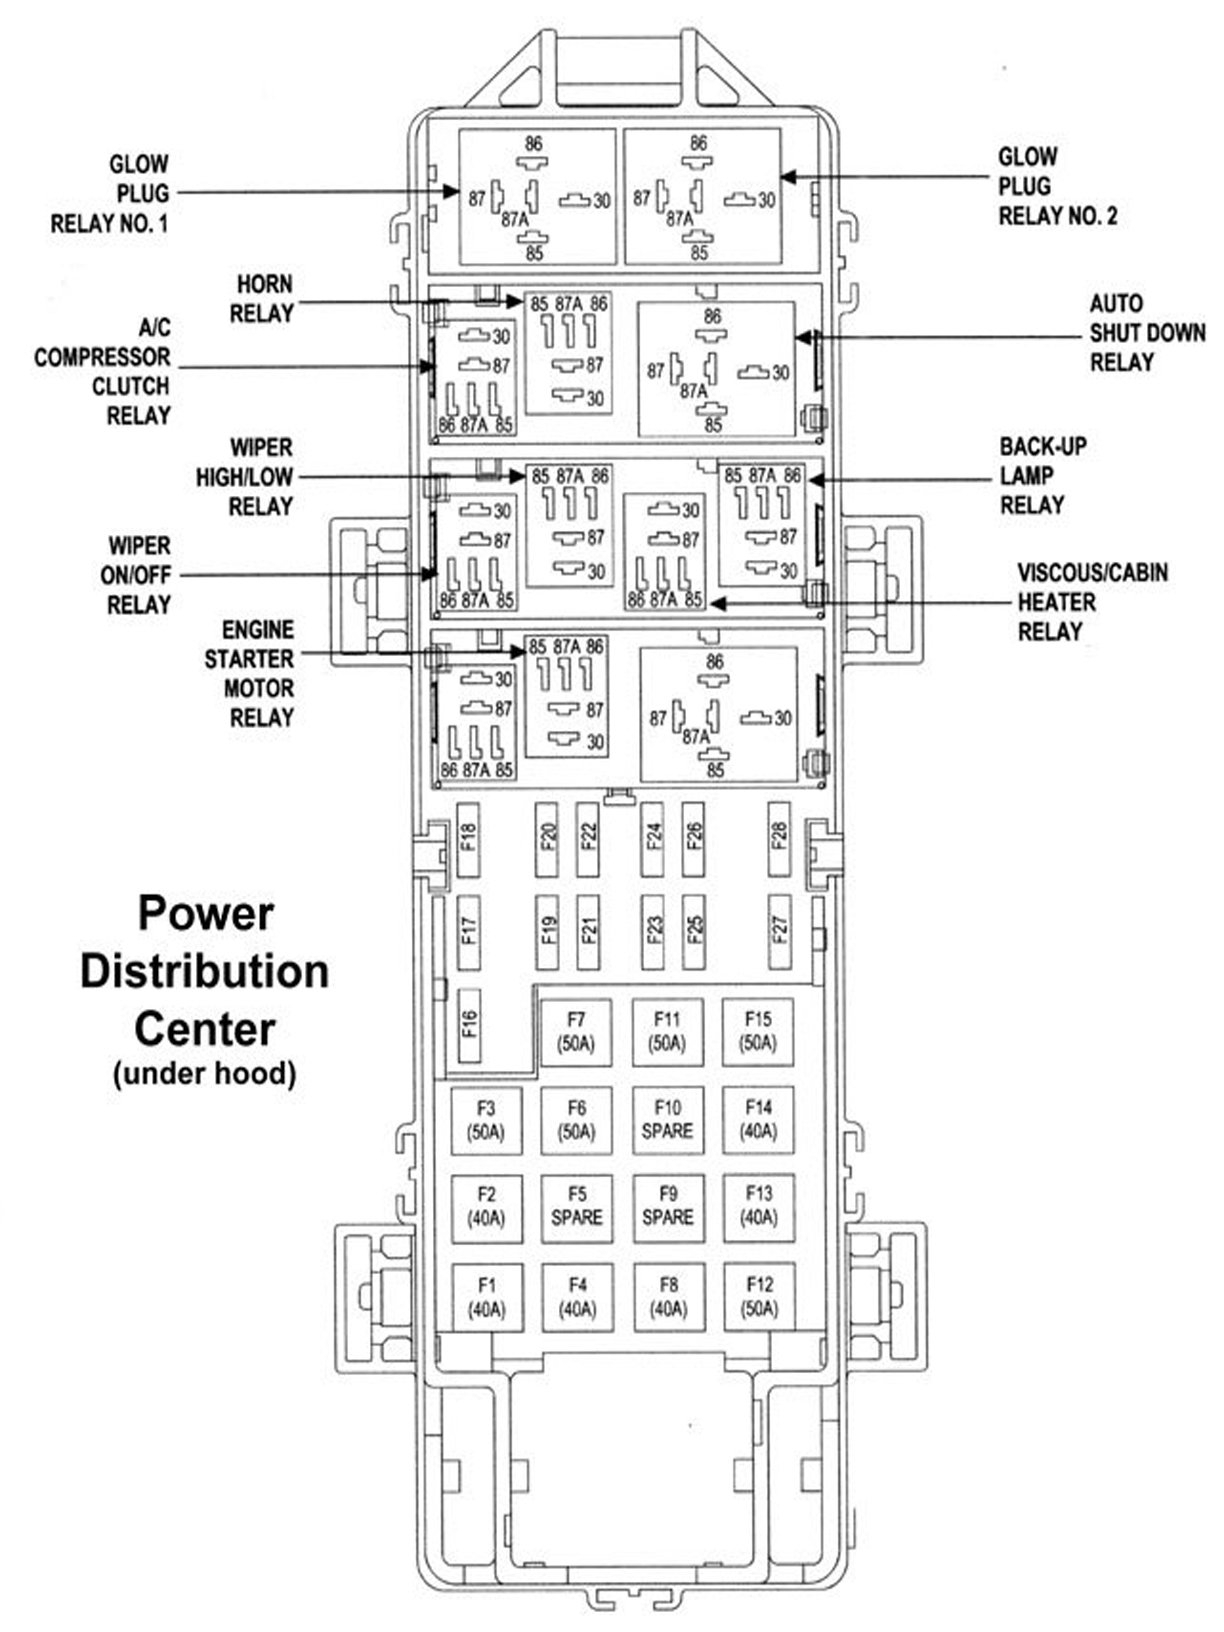 [DIAGRAM] 2007 Jeeppass Fuse Box Diagram FULL Version HD